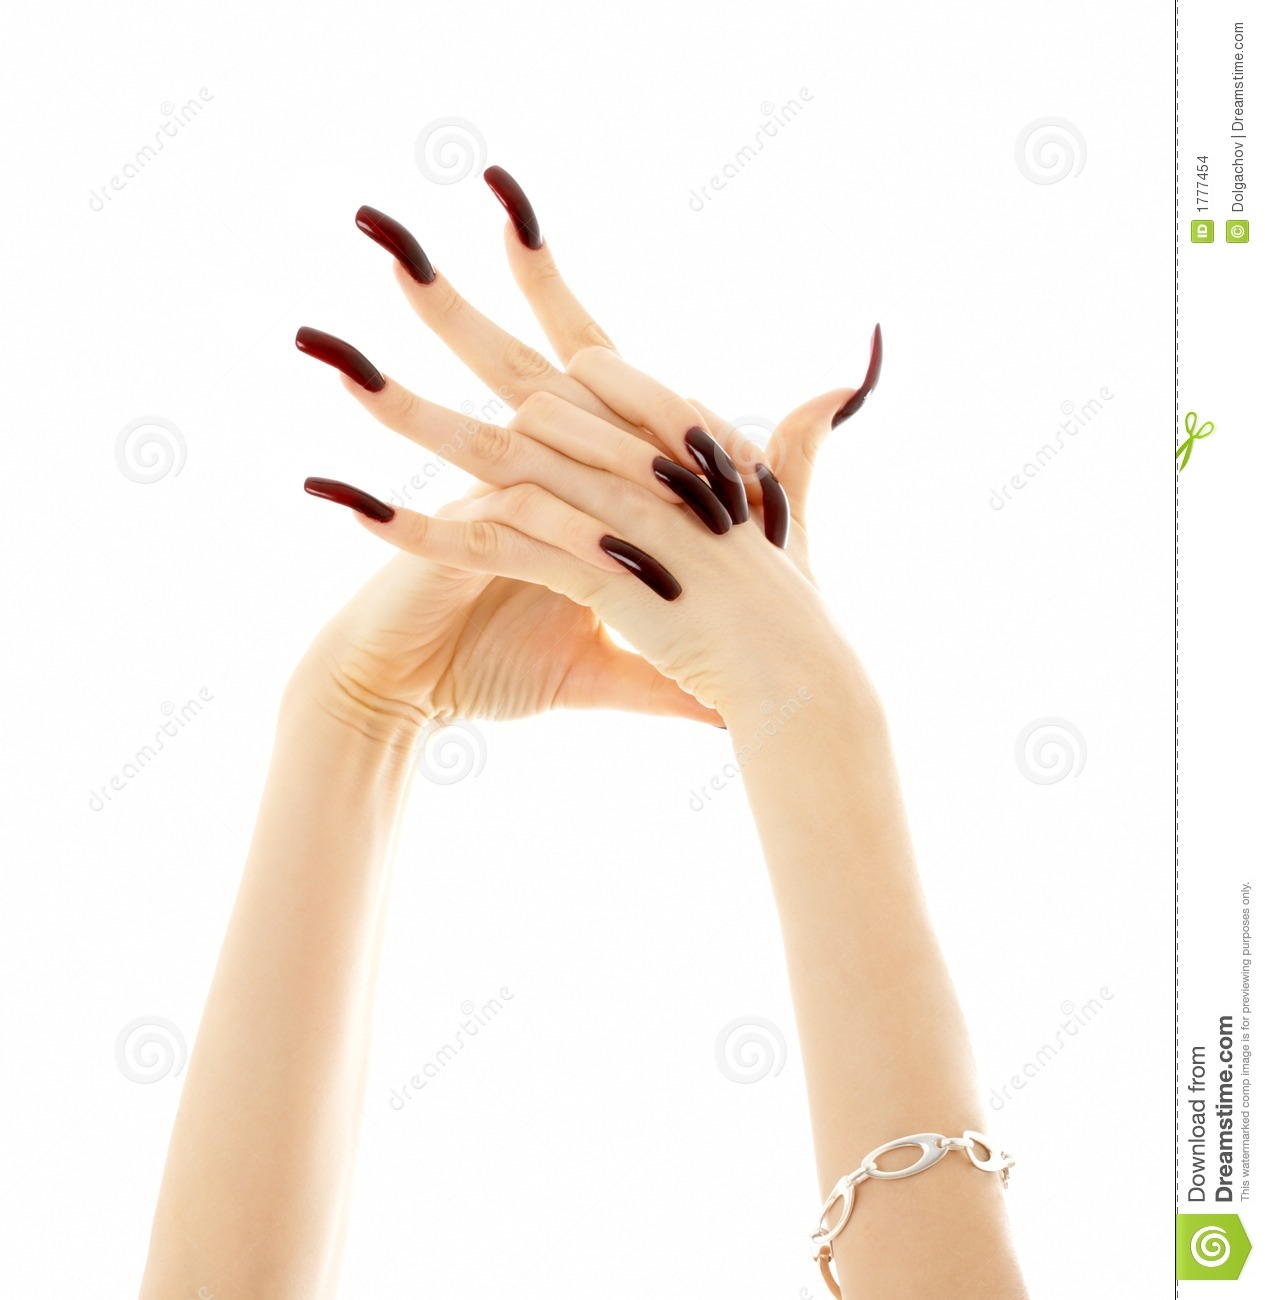 hands with long acrylic nails stock images